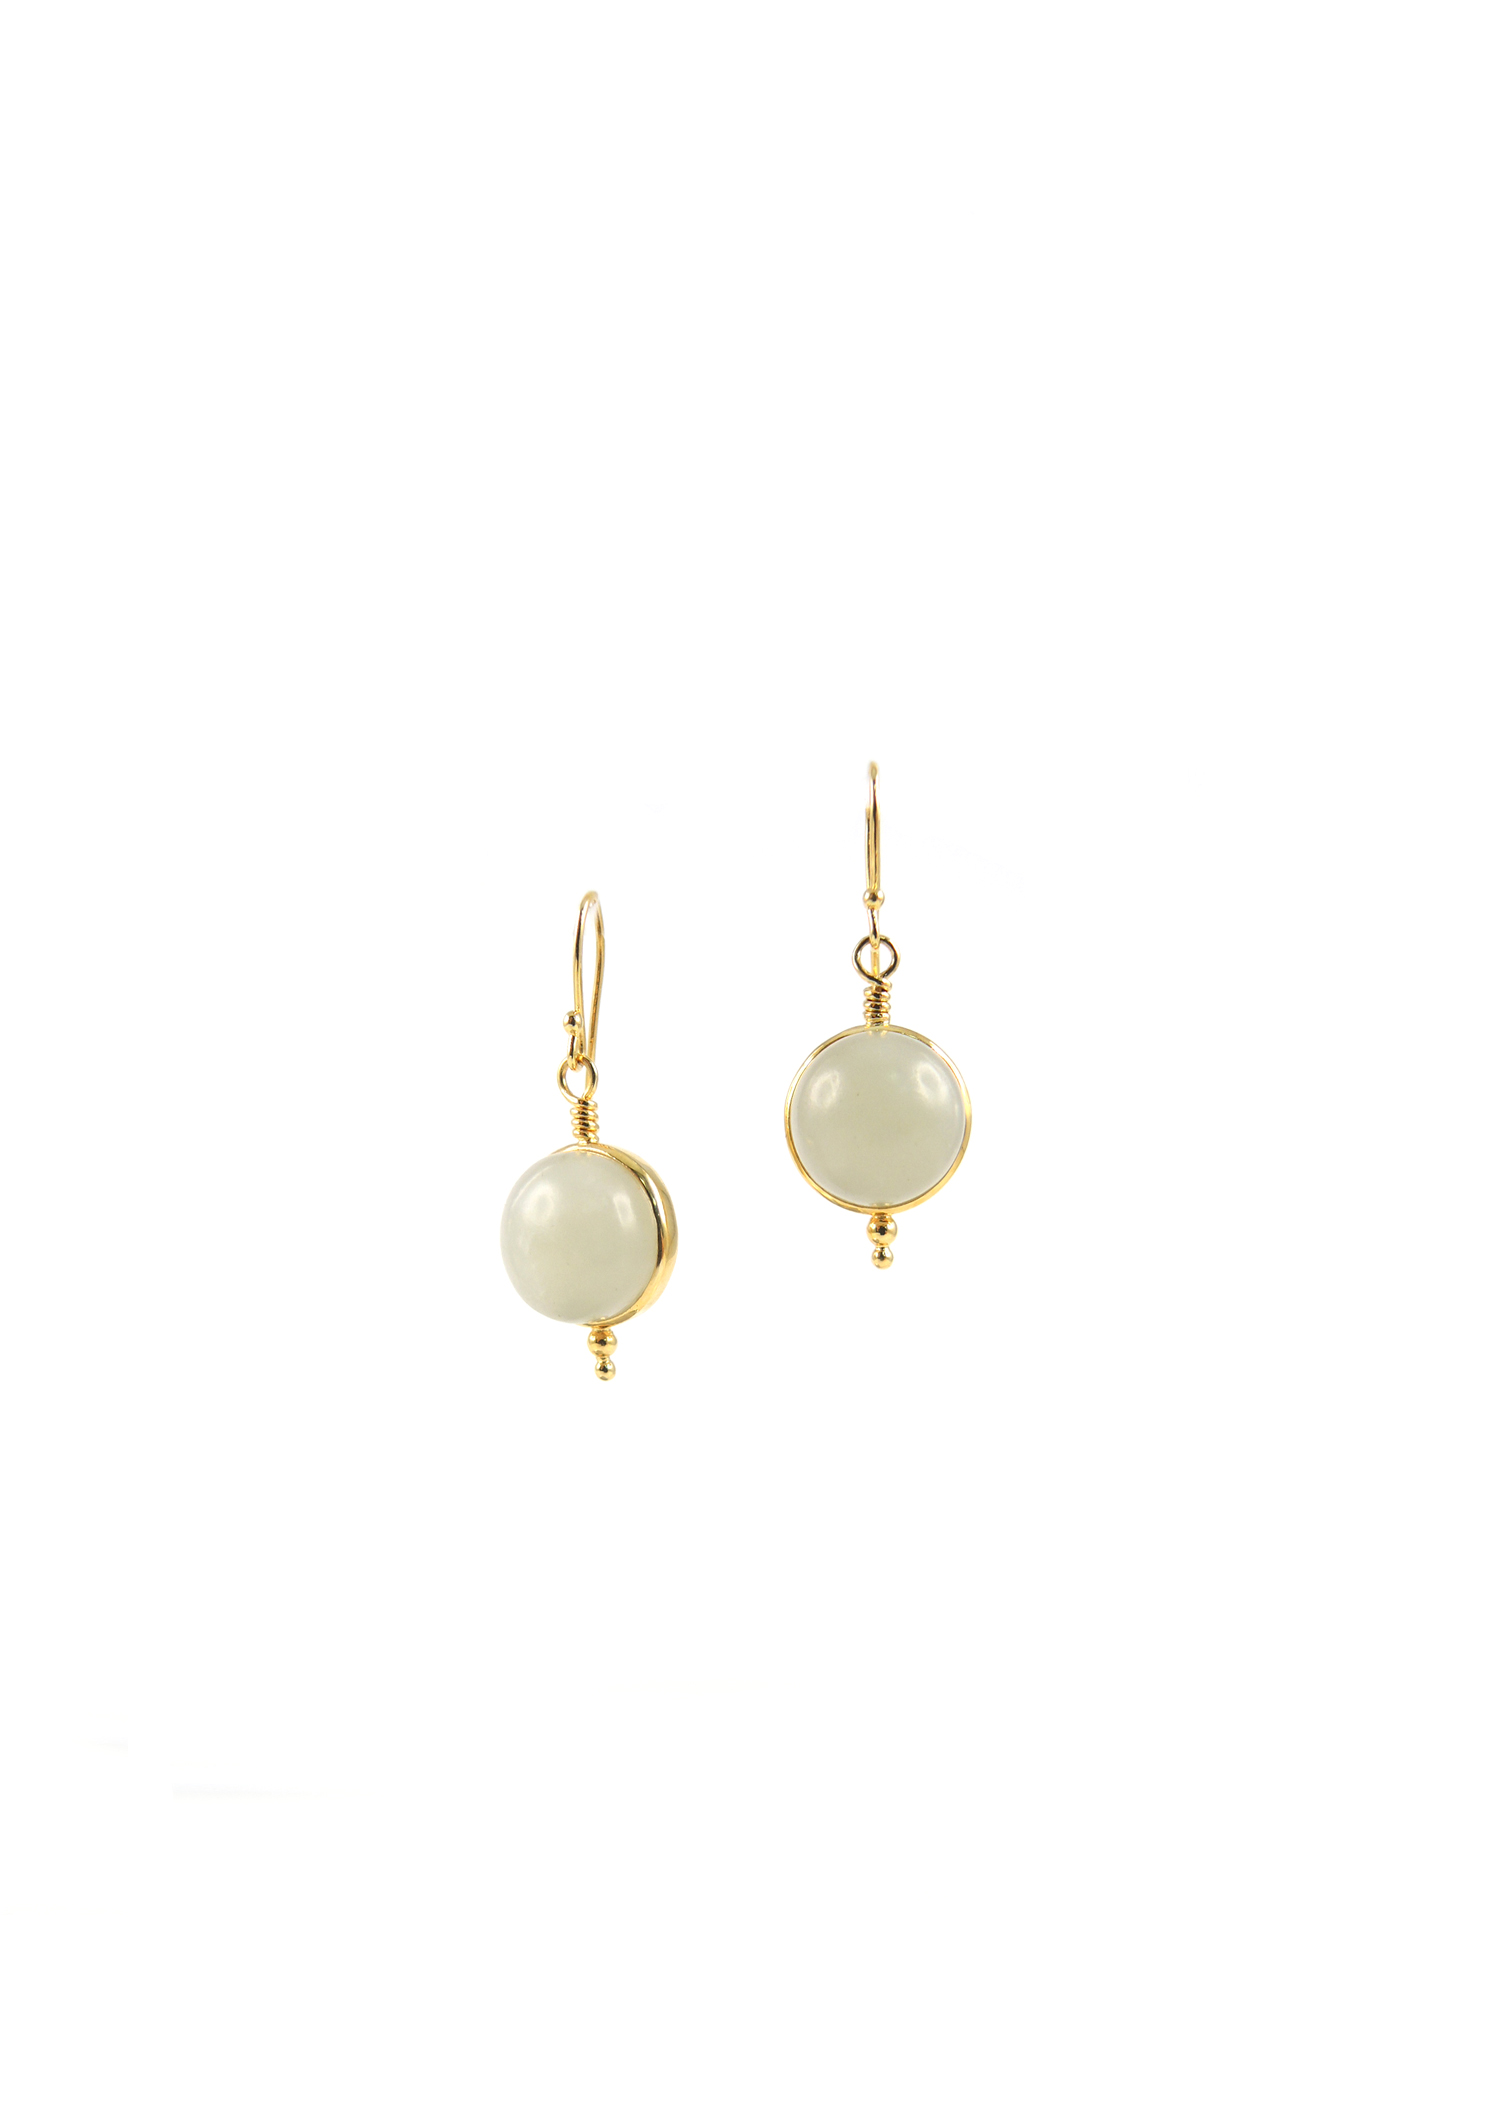 Vintage Mutton Fat Nephrite Antique Buttons are wrapped in 18k, dropped from delicate hook earrings.